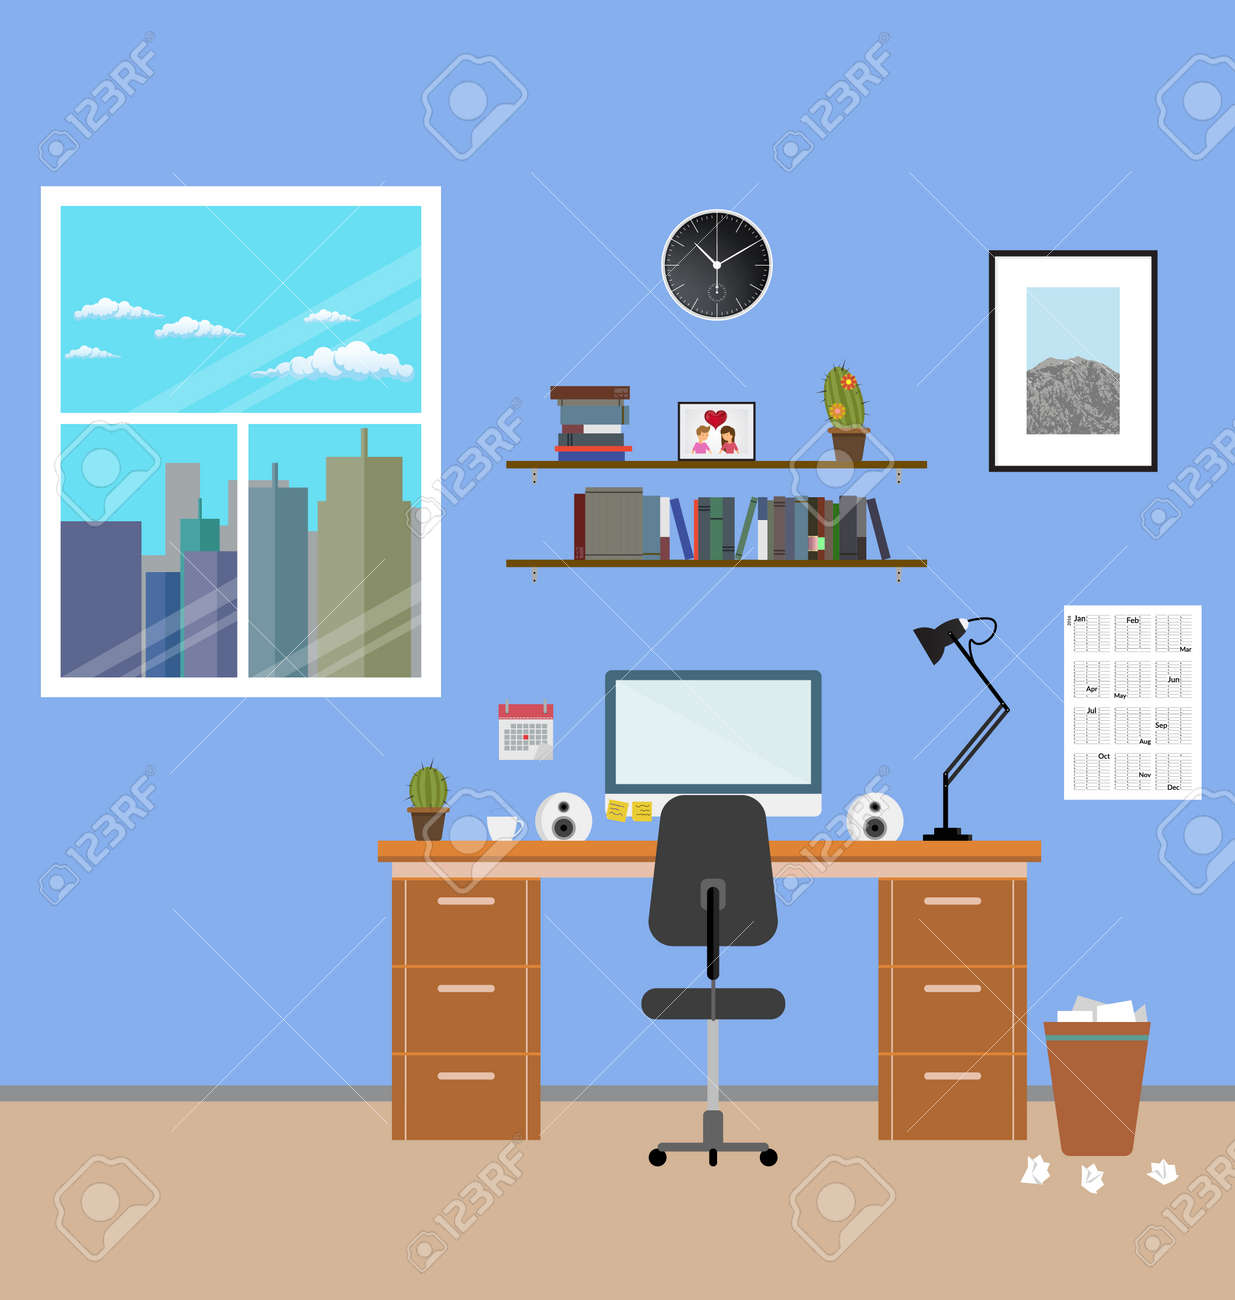 cozy modern workplace near the window in room flat style creative office stock cozy interior e19 interior